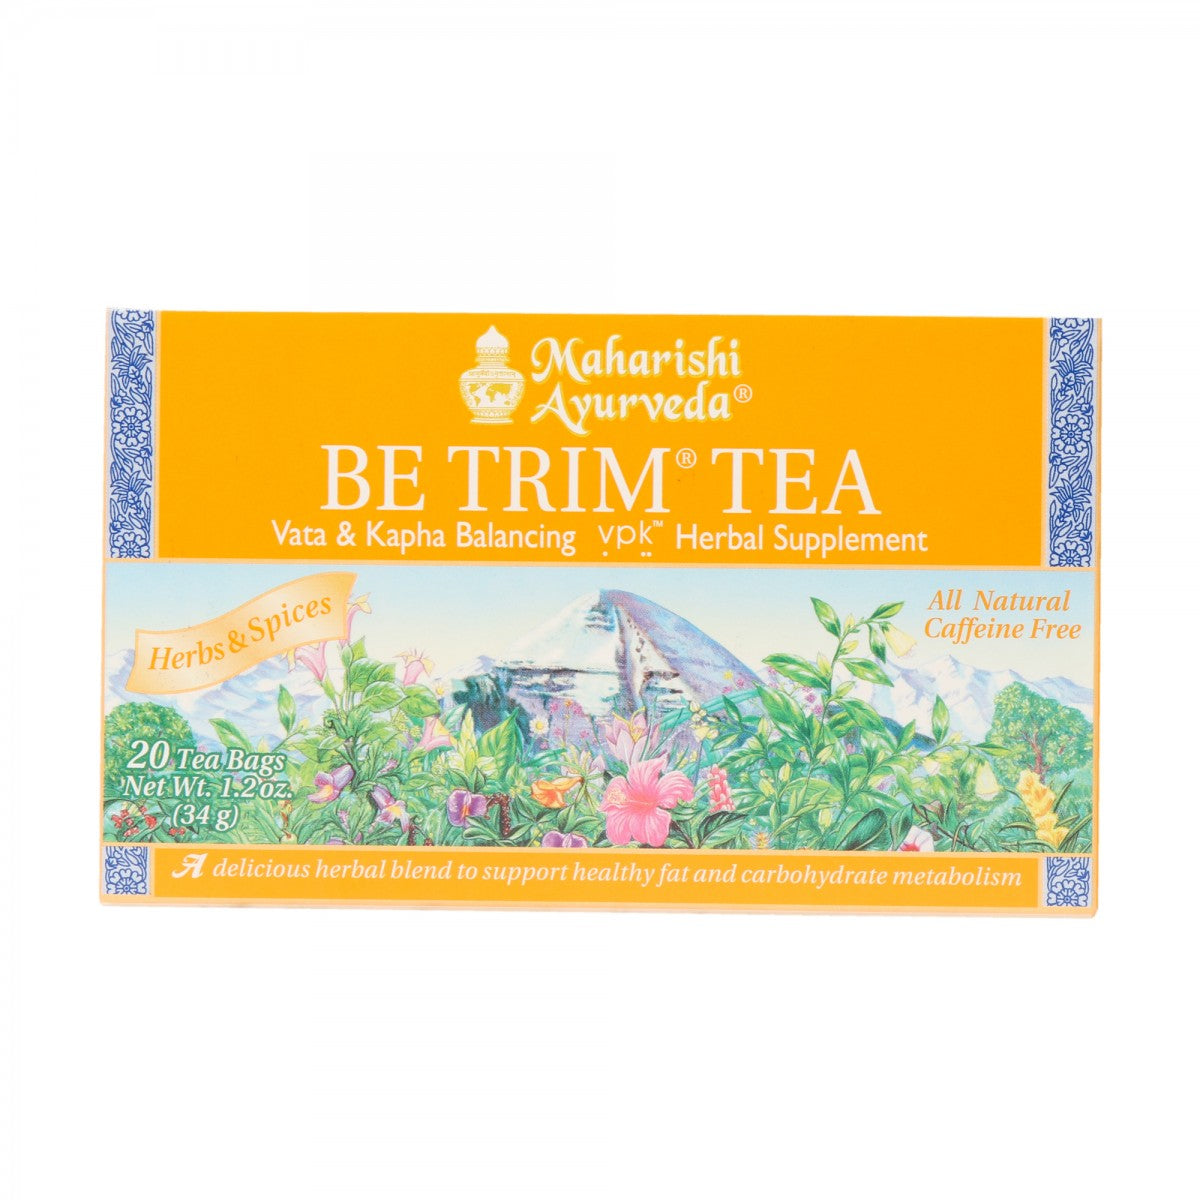 Be Trim Tea - Weight Loss Tea - Maharishi Ayurveda